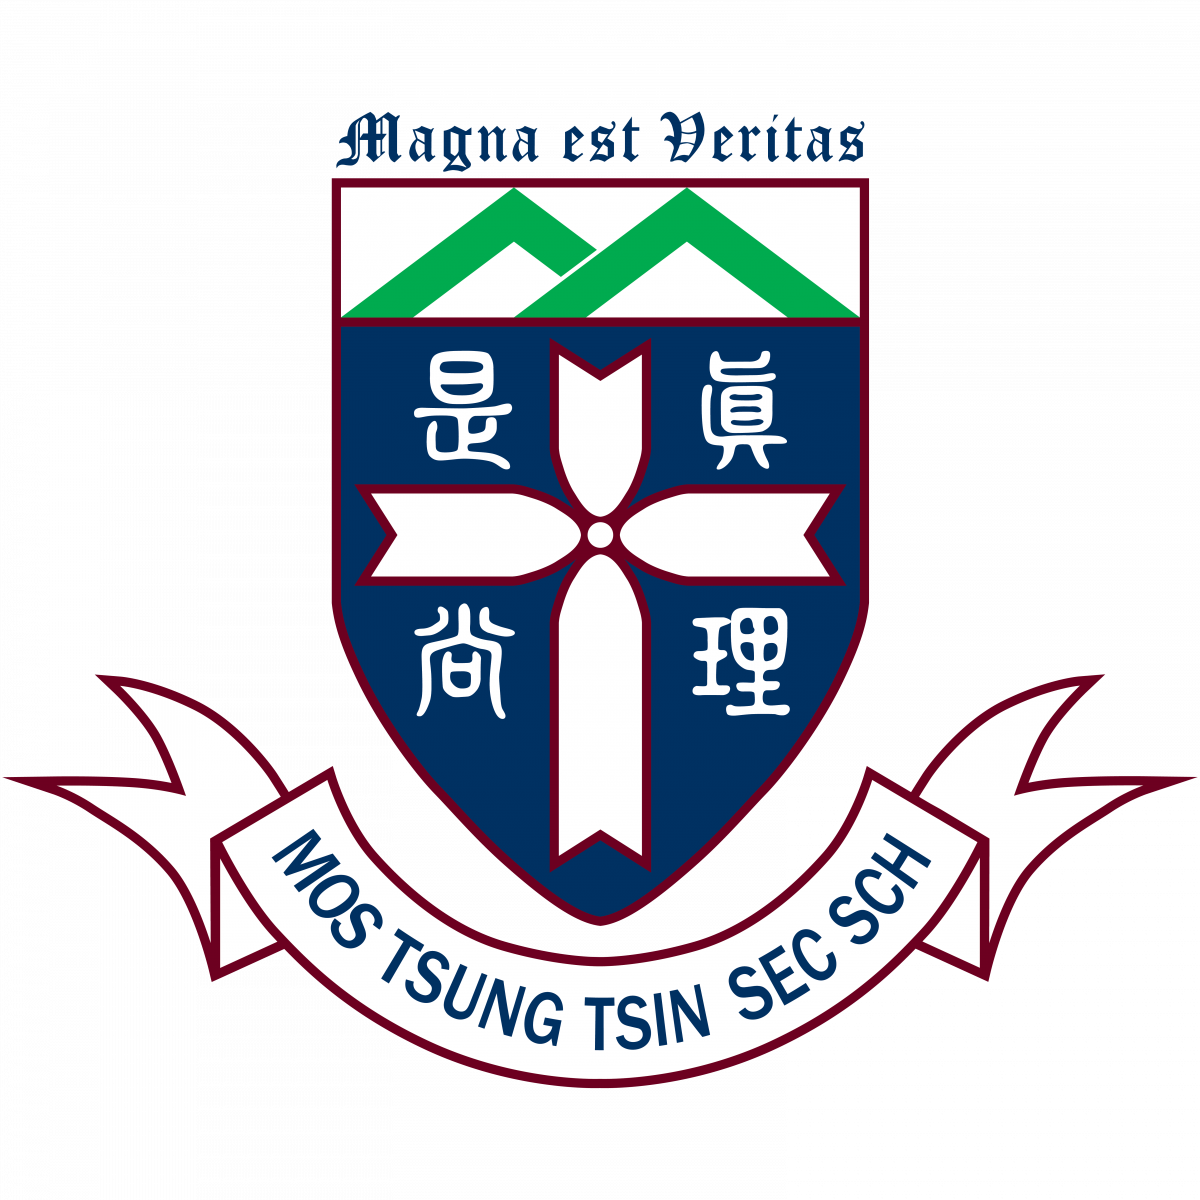 Ma On Shan Tsung Tsin Secondary School – 馬鞍山崇真中學